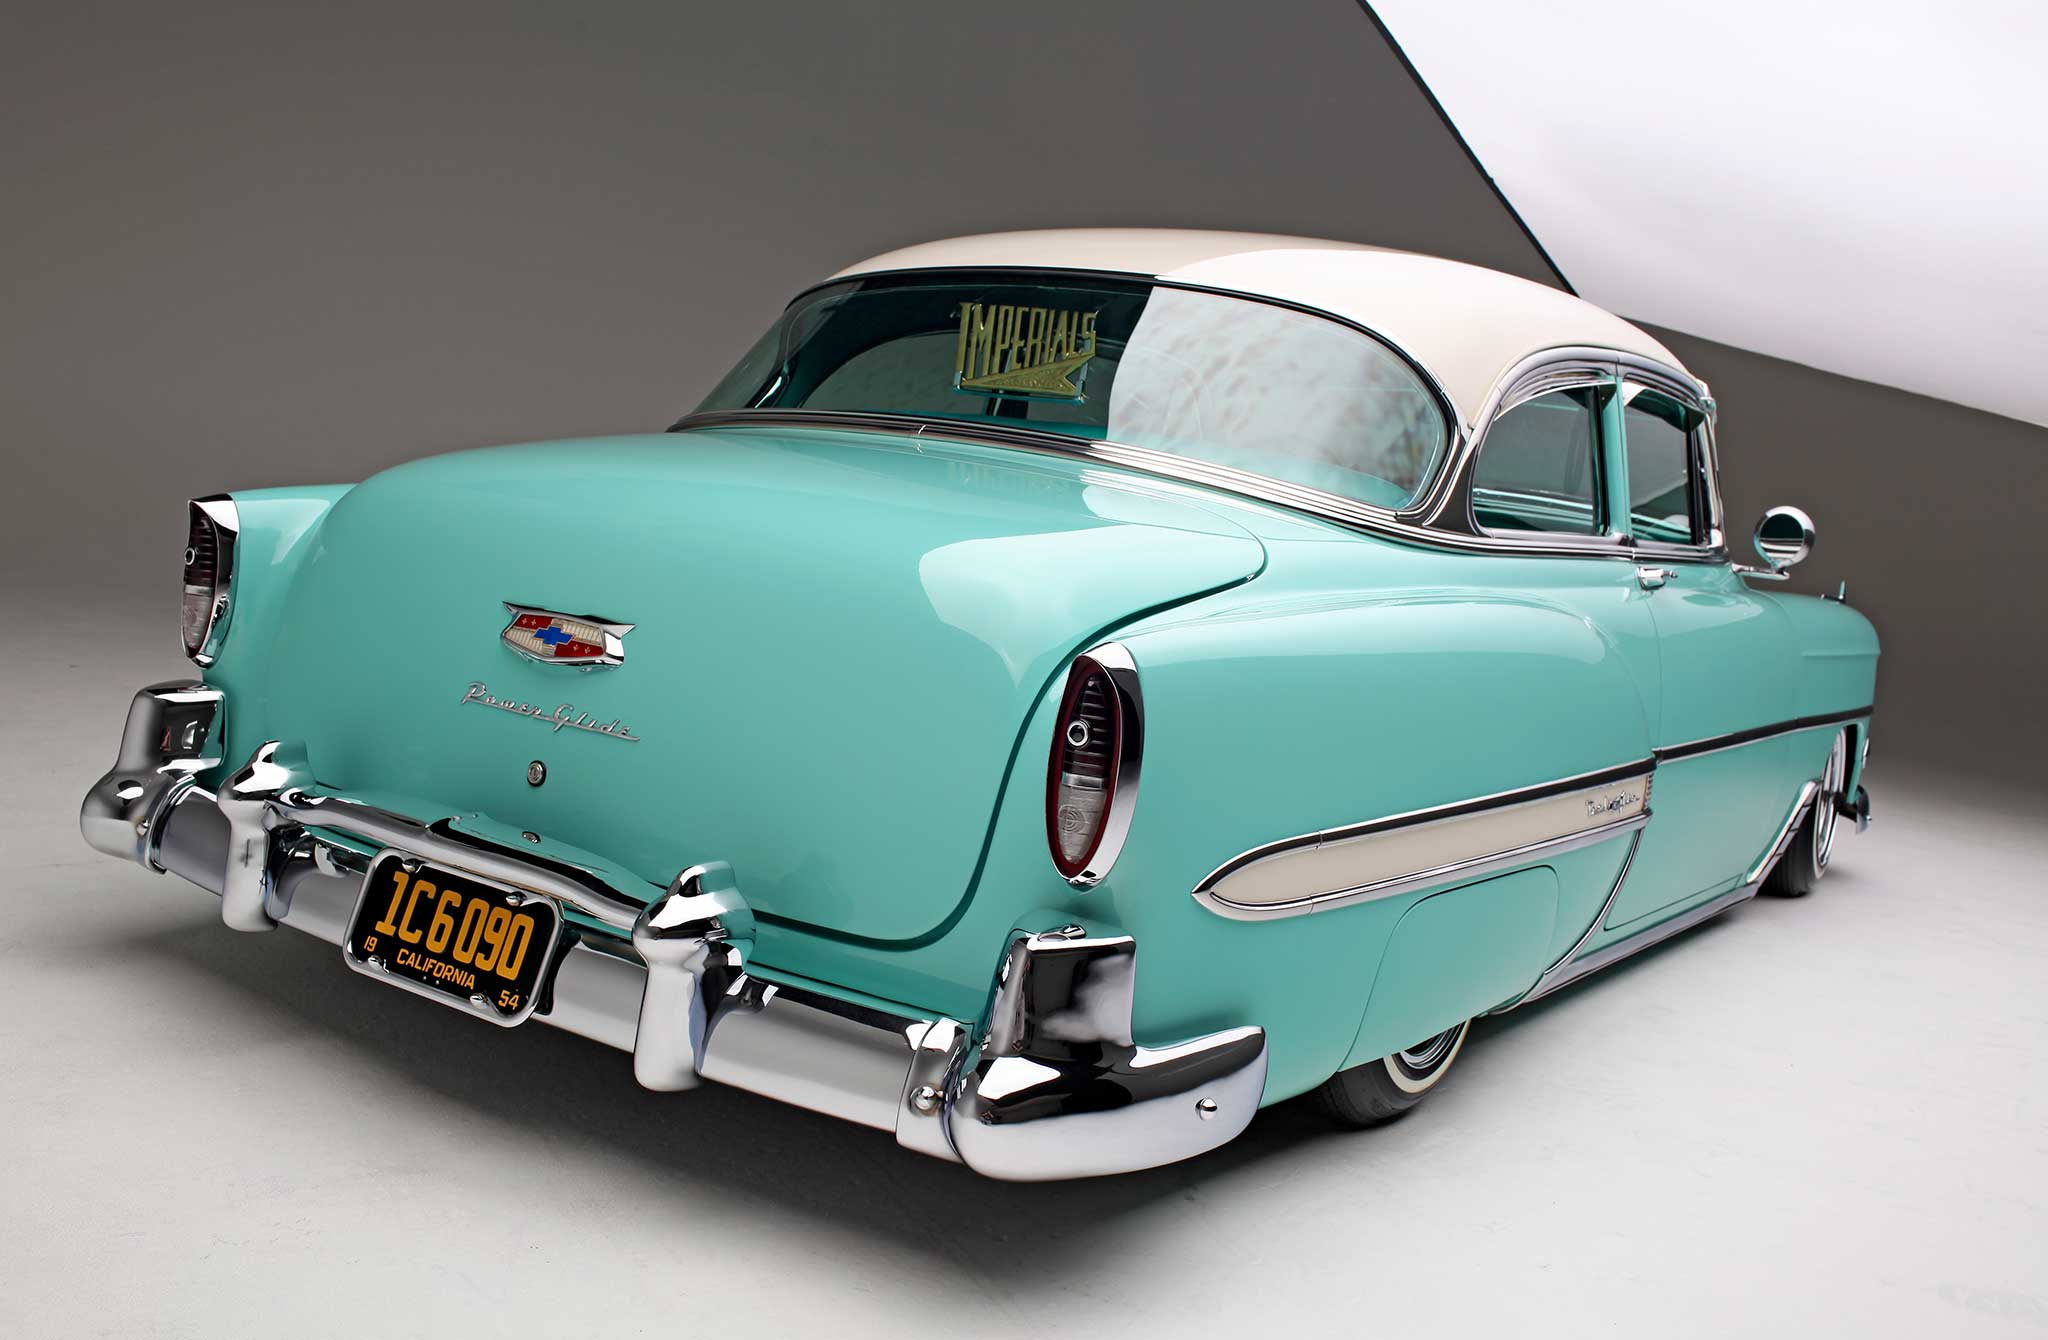 Gm 30 06 10 together with Pin Ups Hot Rods moreover raingearwipers furthermore Chevrolet 1958 Bel Air Impala further 162622236518656229. on 1950 chevy bel air